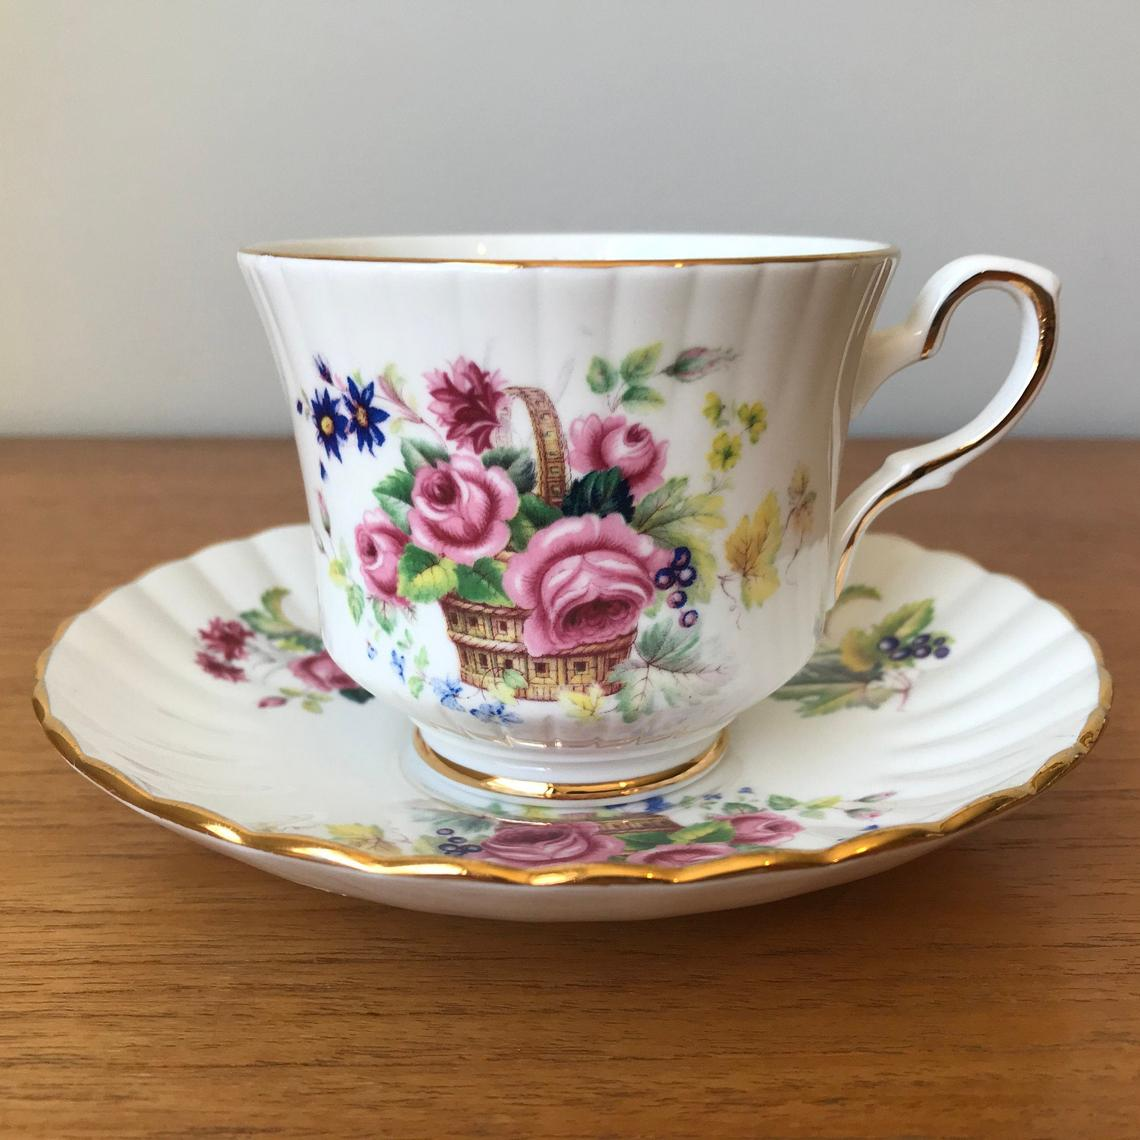 Royal Stafford Tea Cup and Saucer, Basket of Flowers Teacup and Saucer